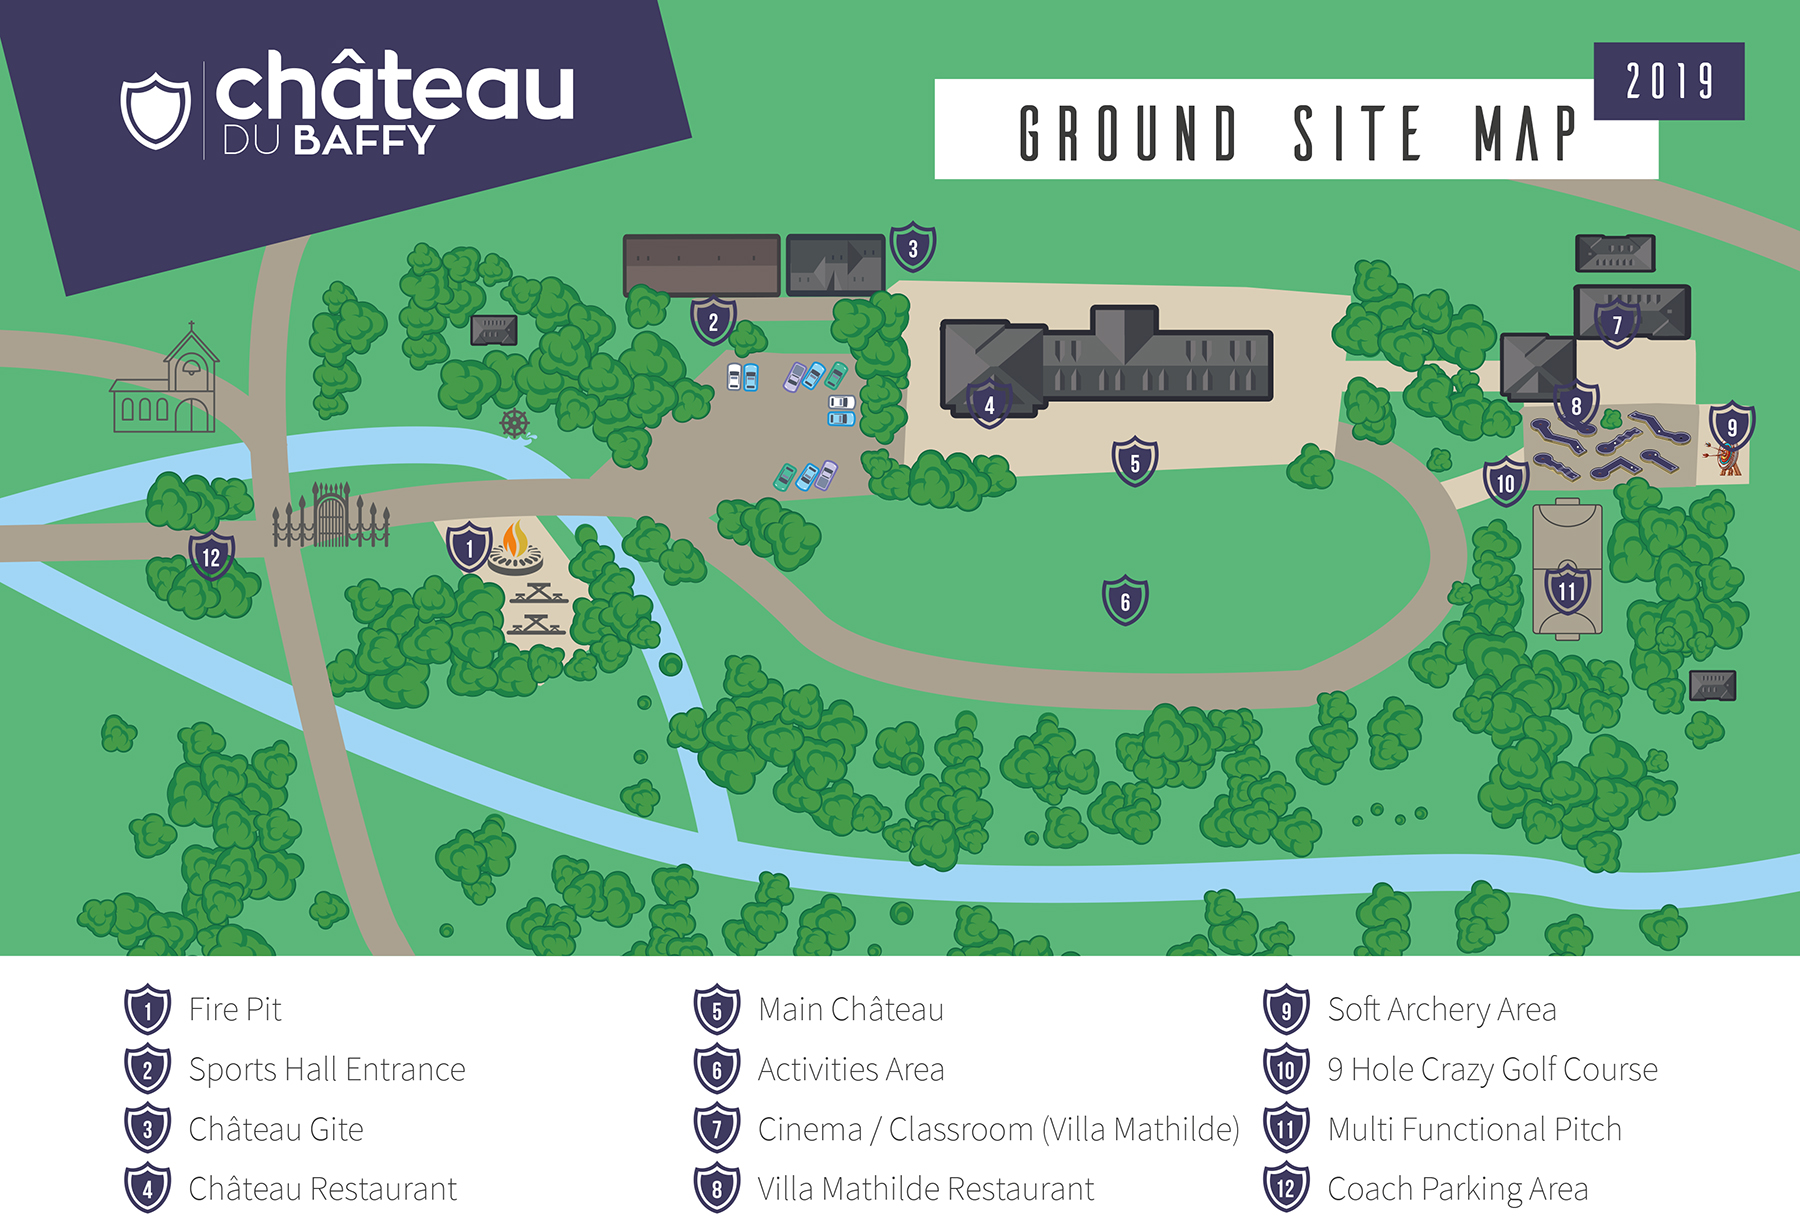 Chateau du Baffy Site Map for Evening Entertainment with key January 2019 smaller